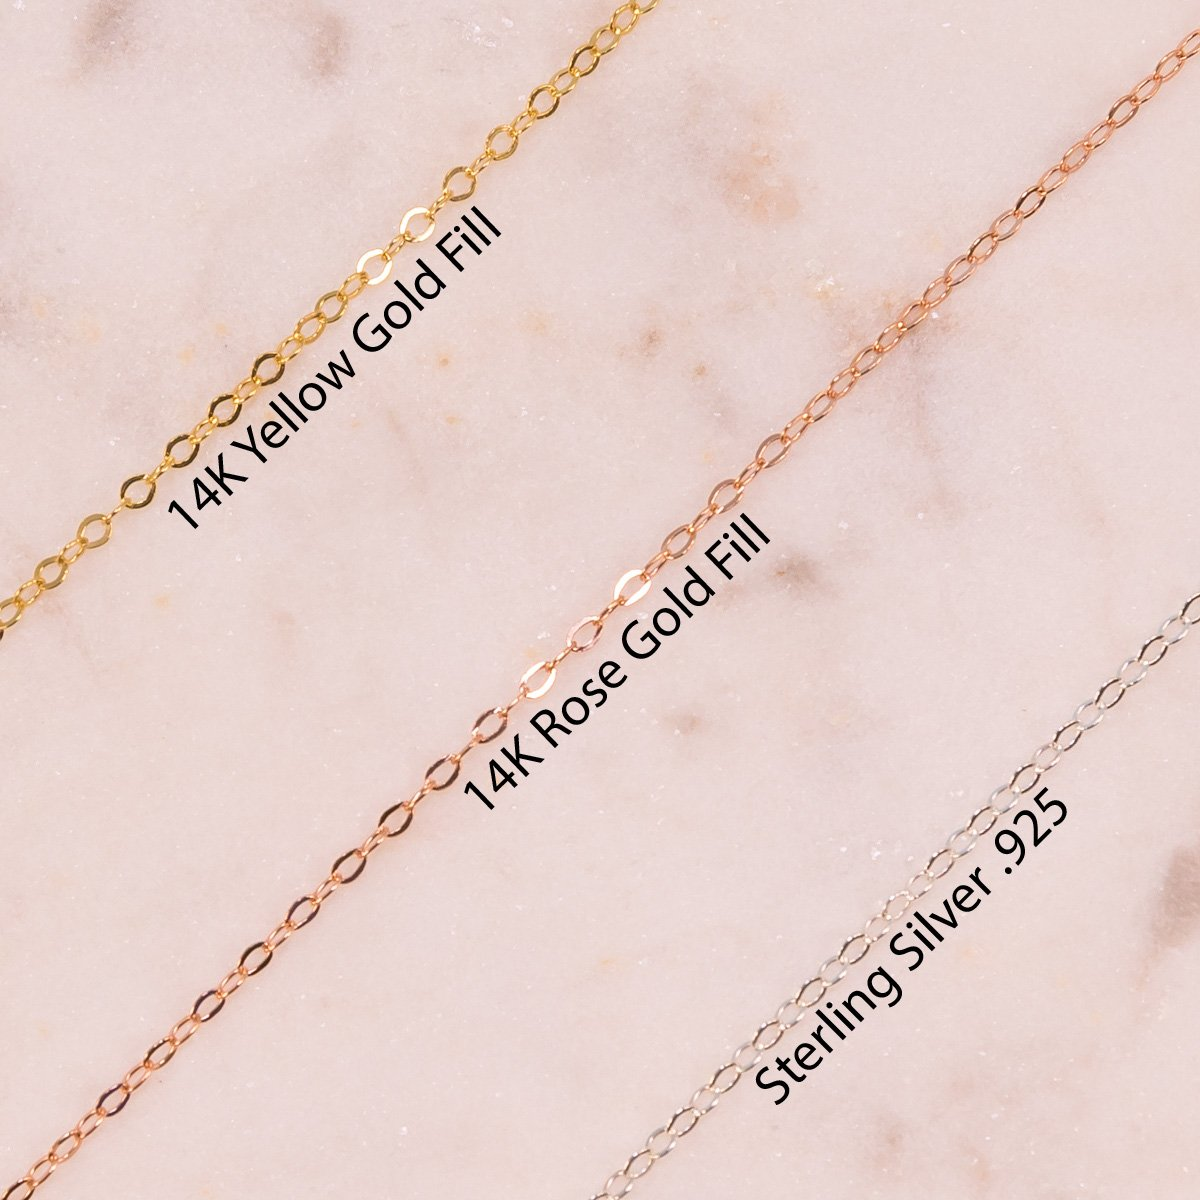 Yellow Gold Chain, Rose Gold Chain, Sterling Silver Chain, Chain Metals Compariston Liz.Beth Jewelry Co.